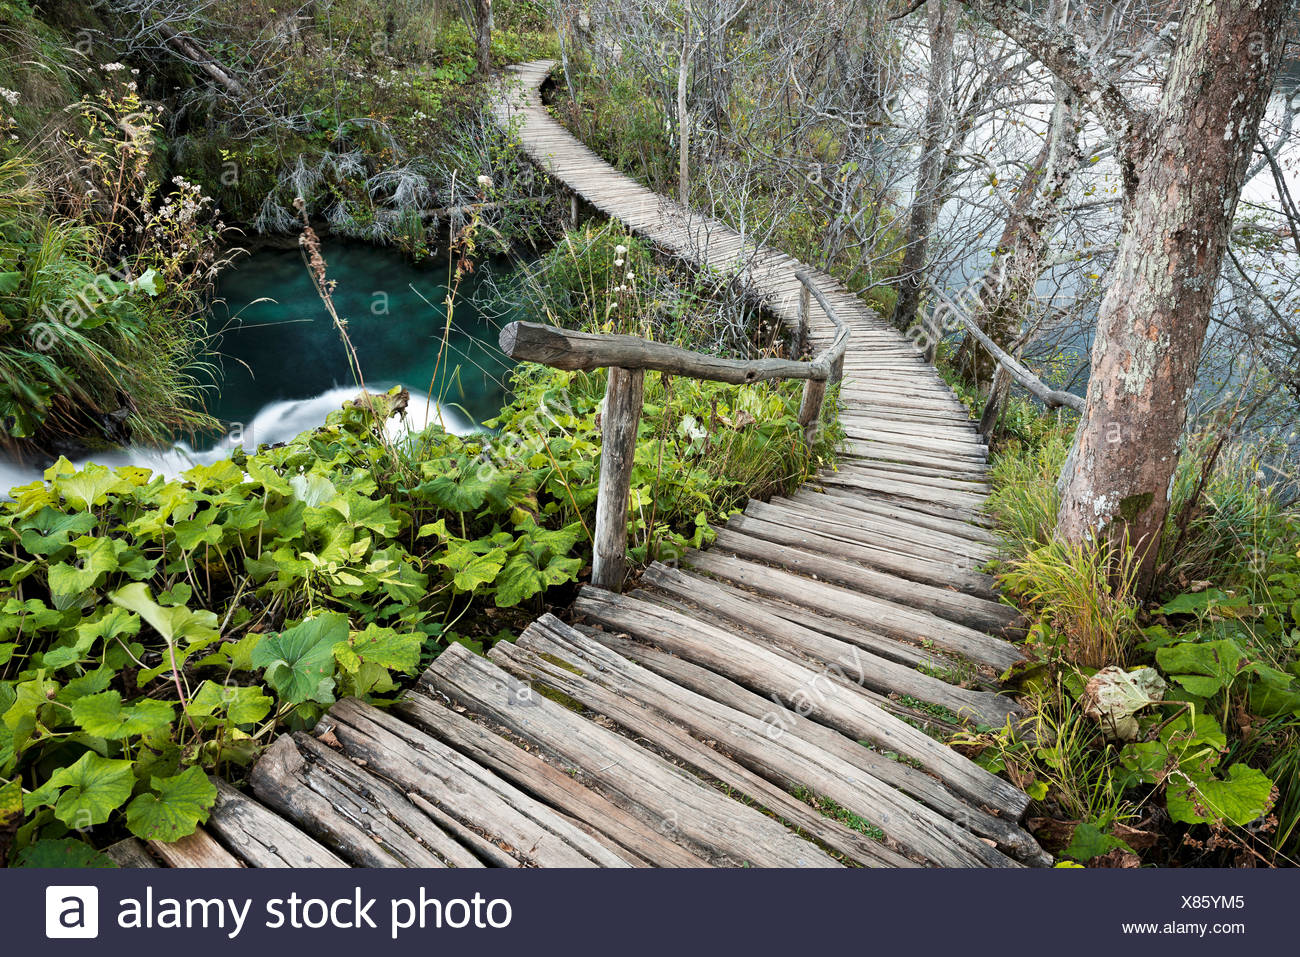 Ways, forest, Woodland, water, lake, tree, path, beam, plants, green, turquoise, nature, dream, winding, - Stock Image